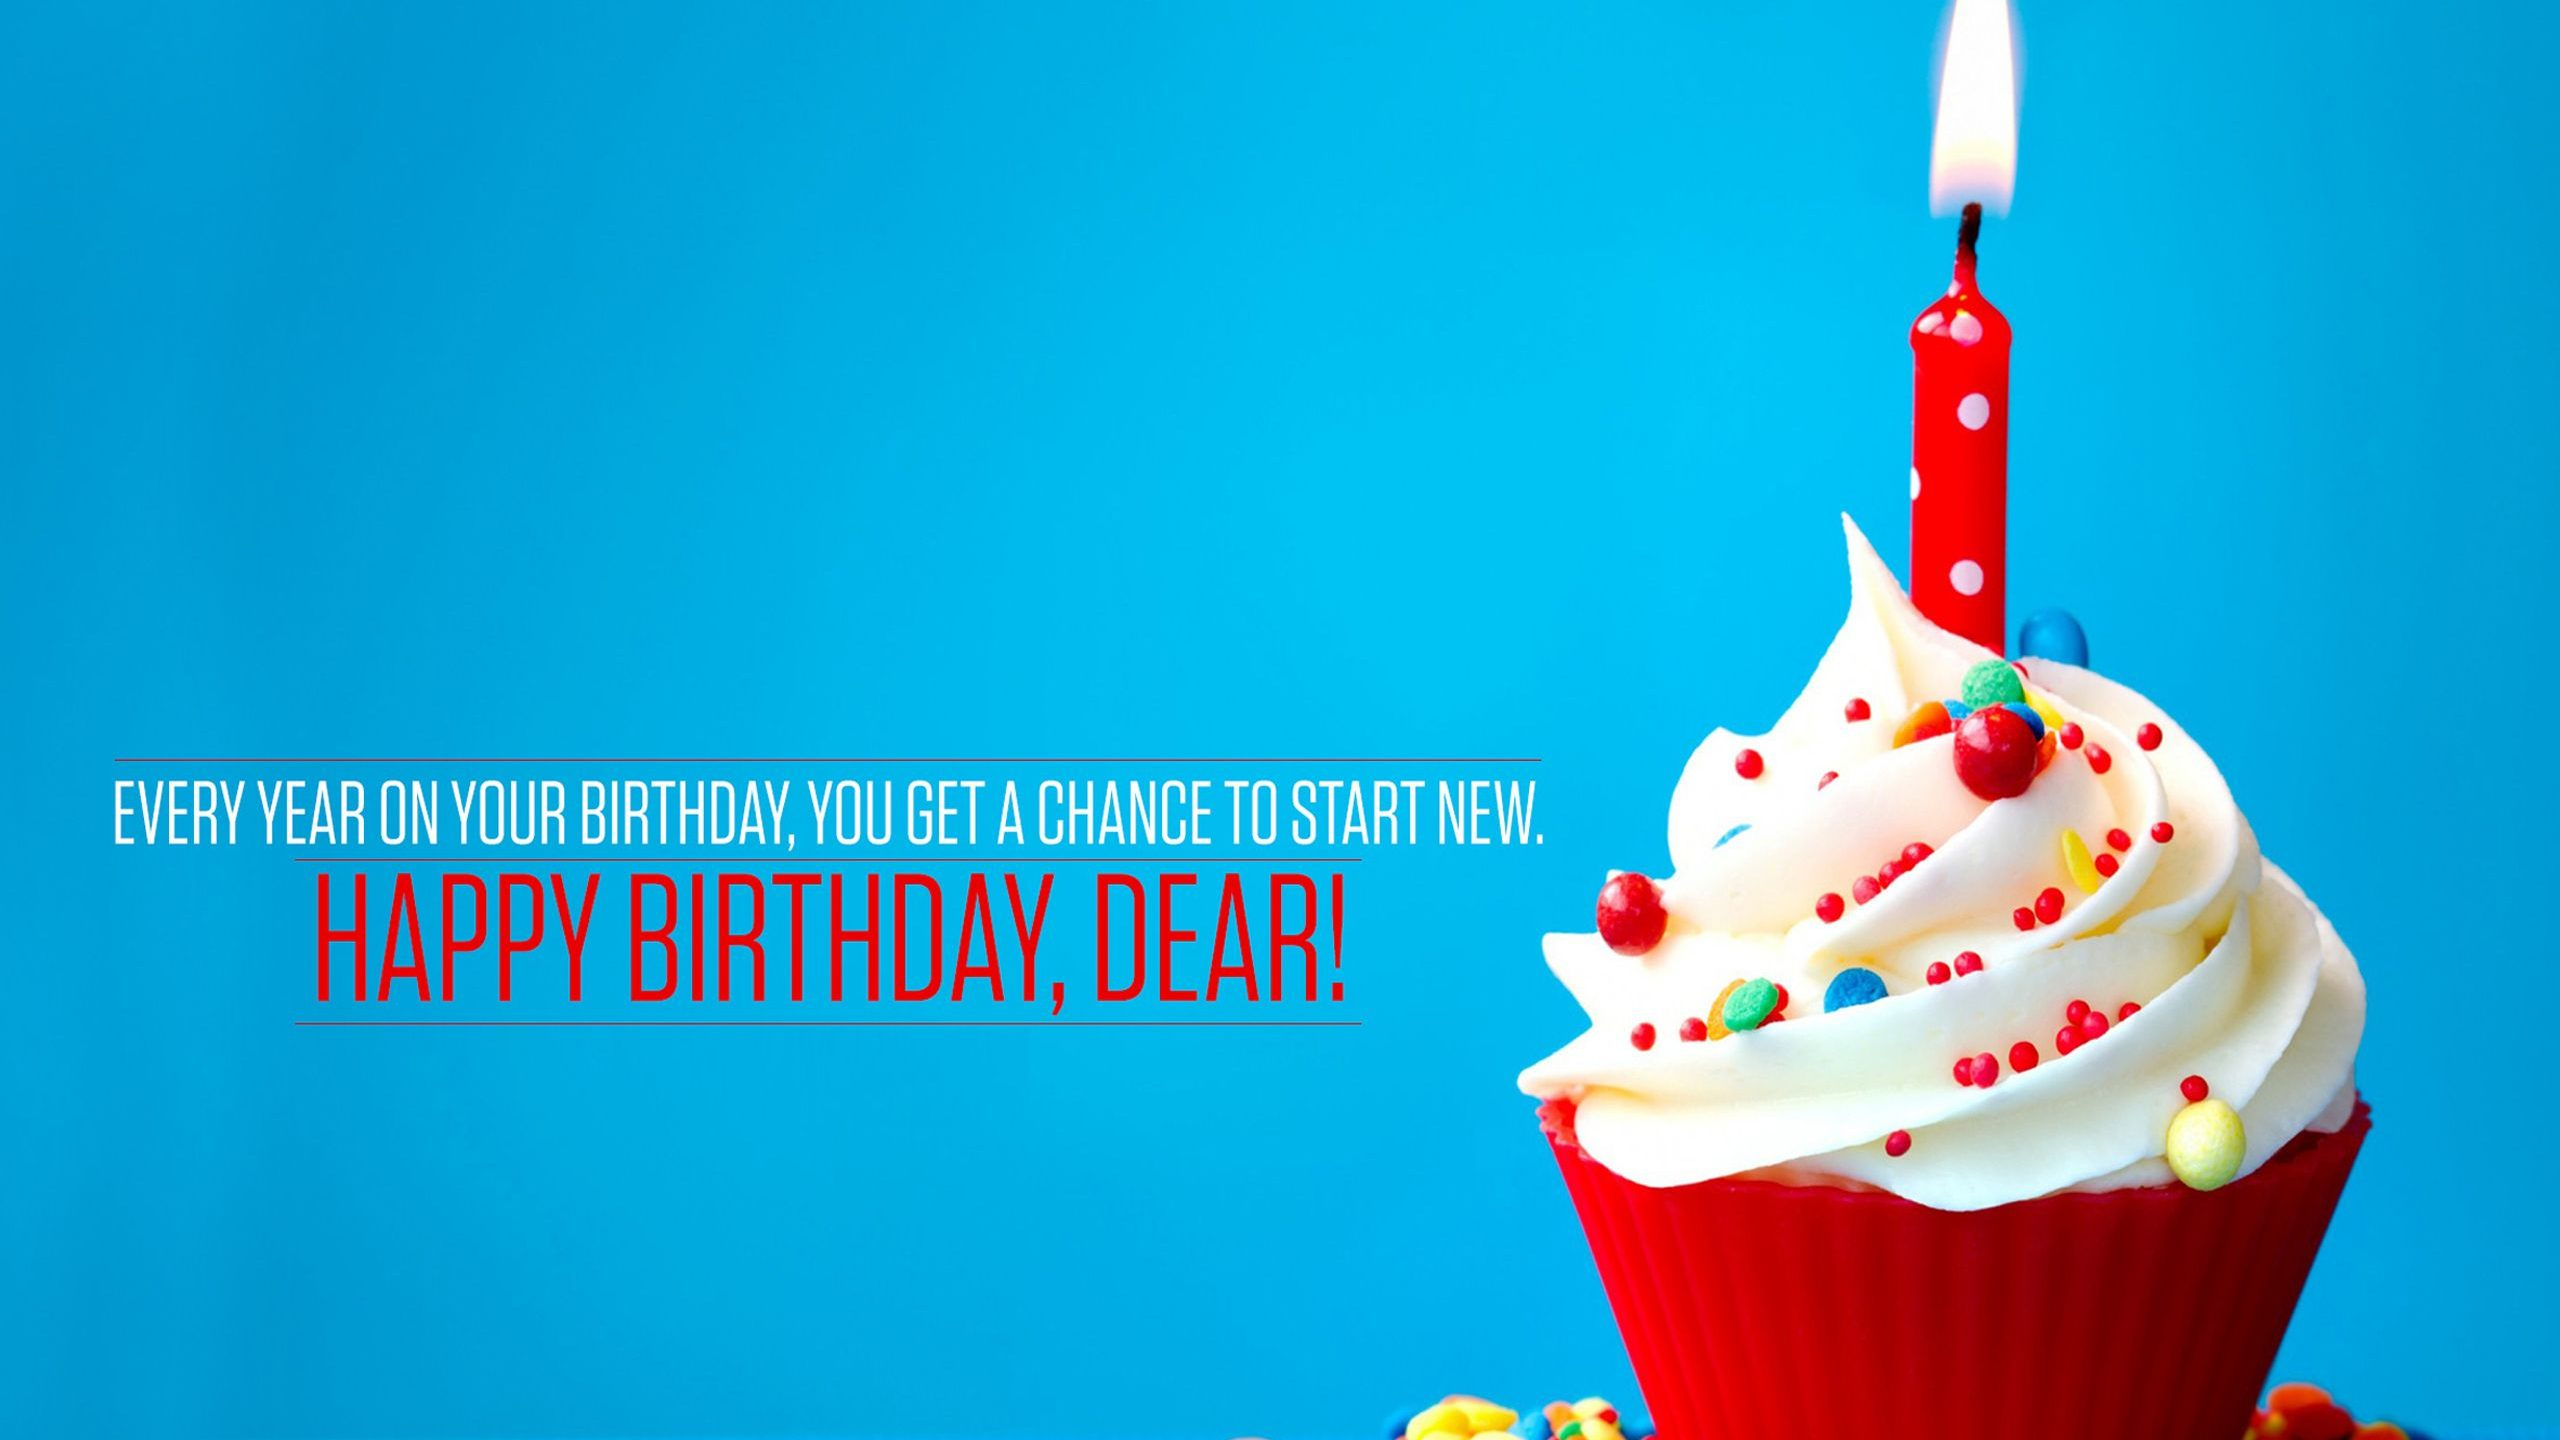 wallpaper happy birthday to you ; HD-Happy-Birthday-Wishes-Wallpaper-2560x1440